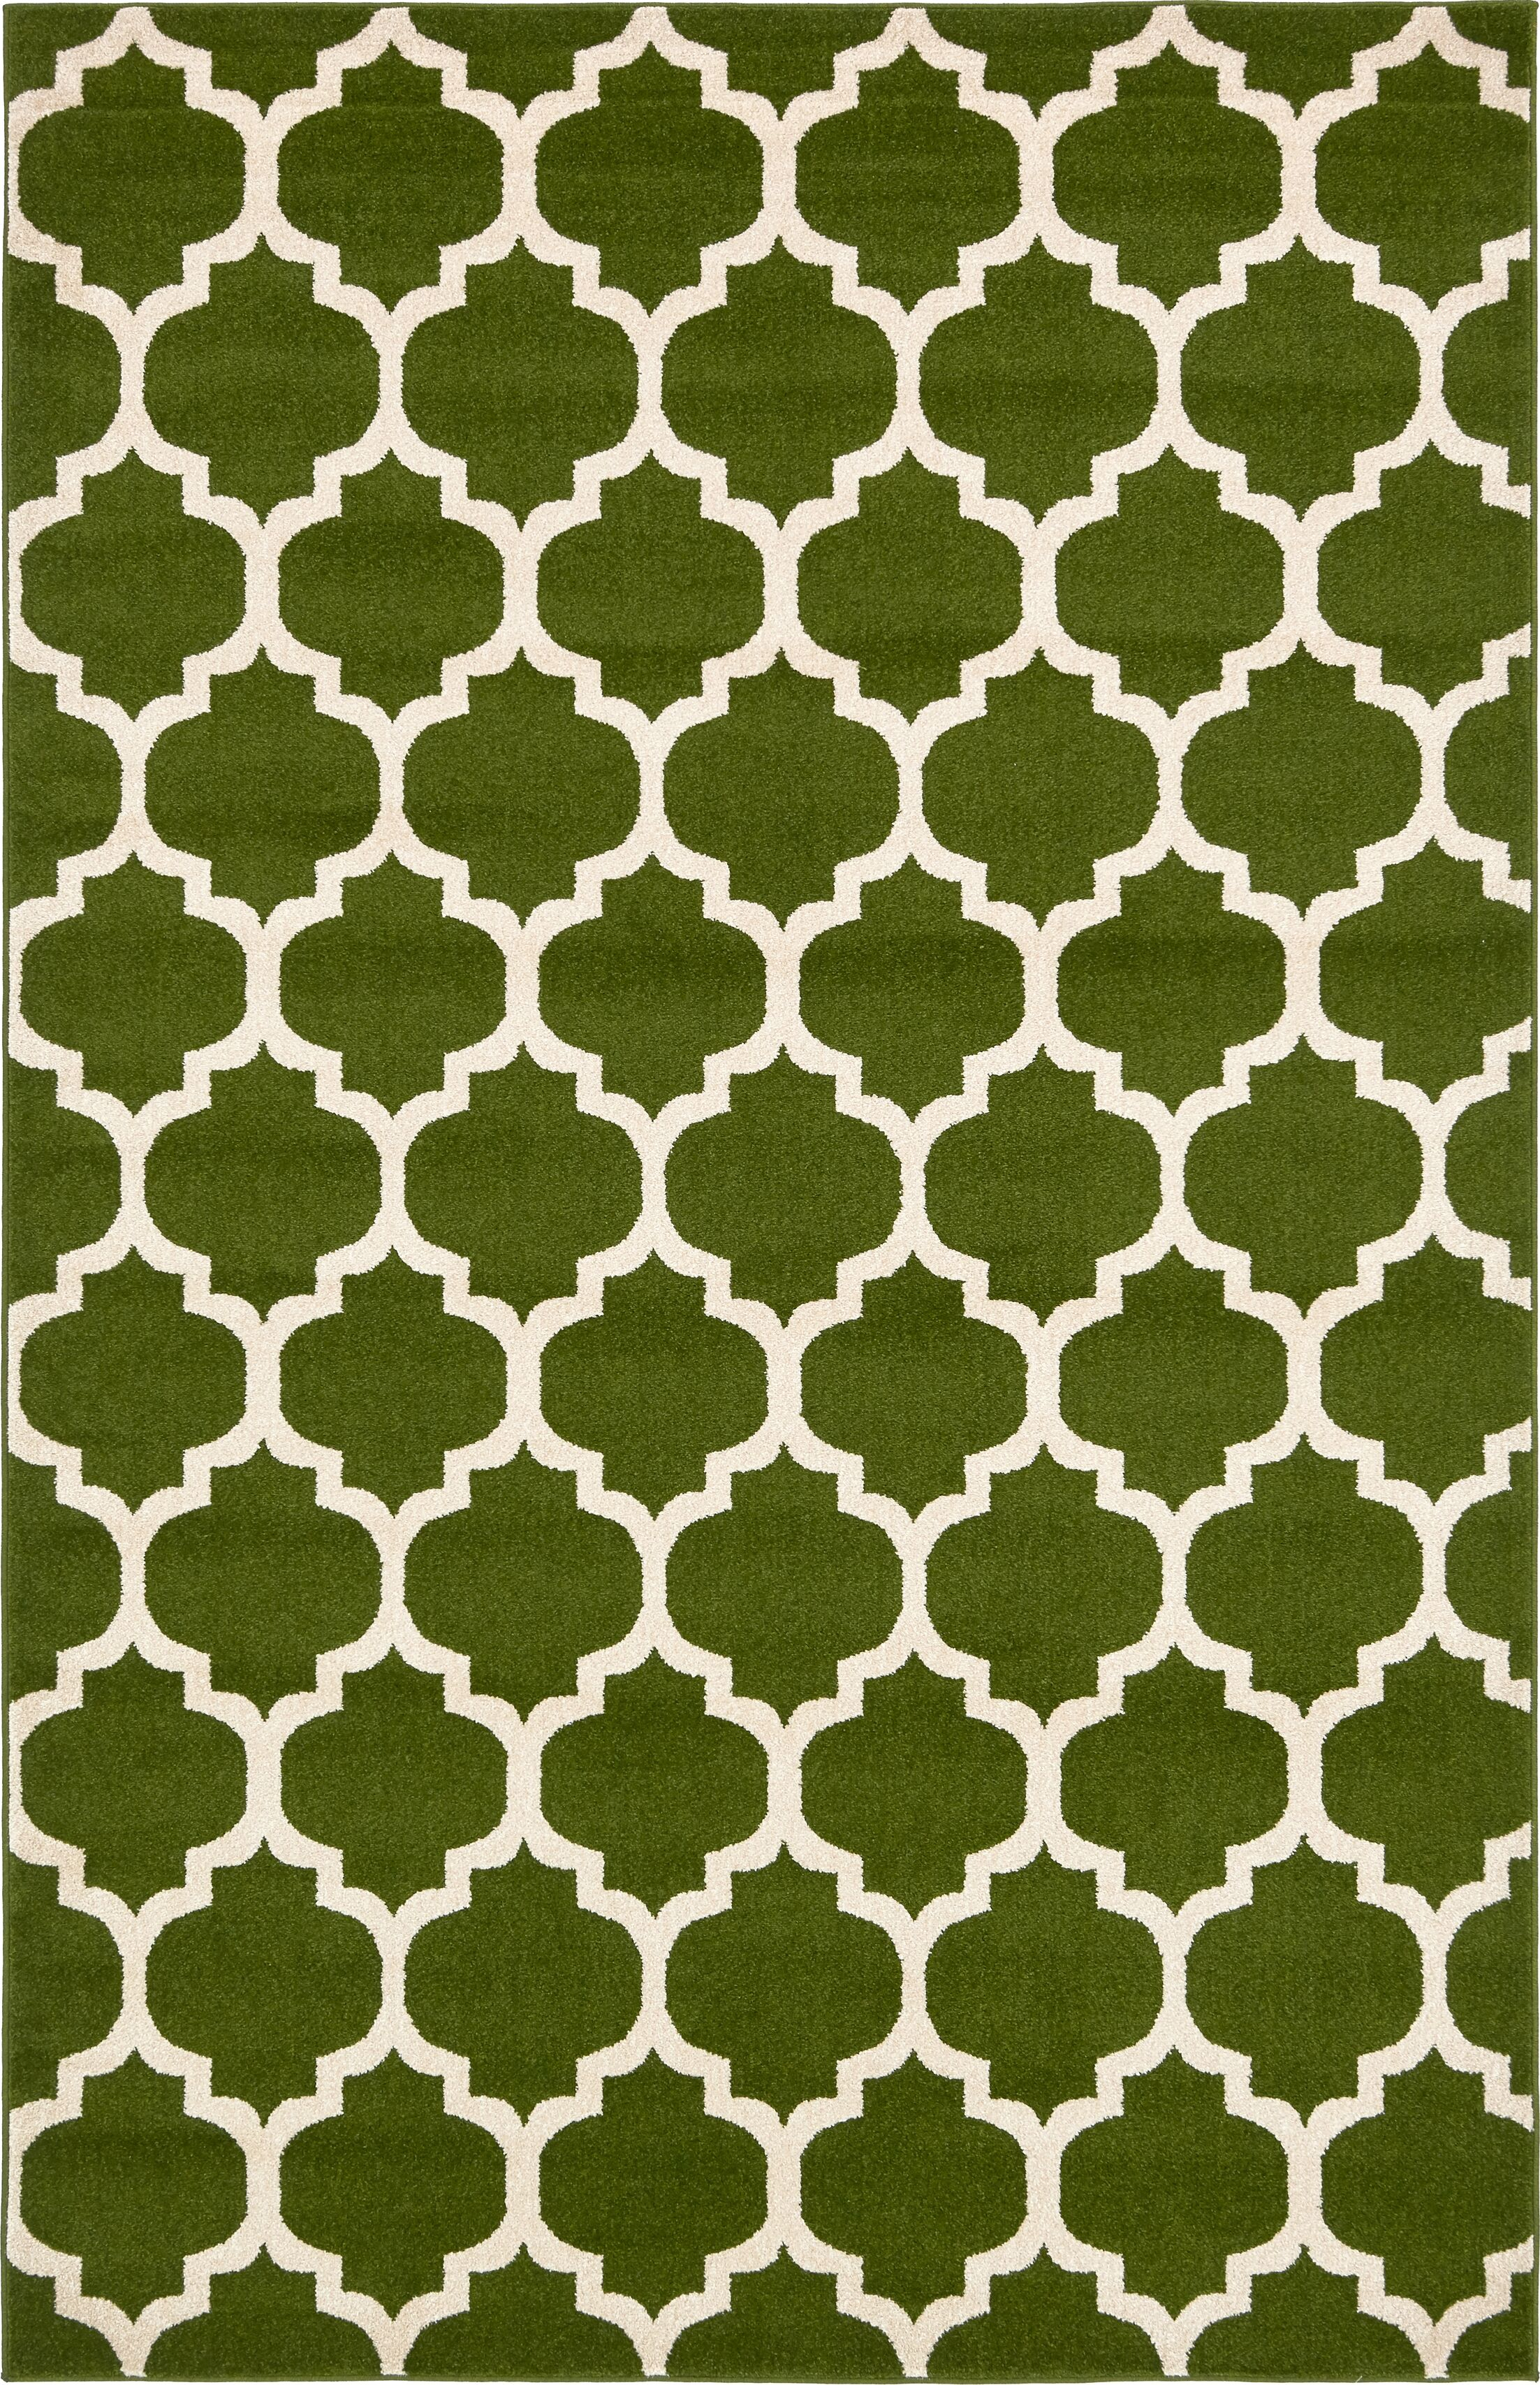 Moore Green/Beige Area Rug Rug Size: Rectangle 6' x 9'